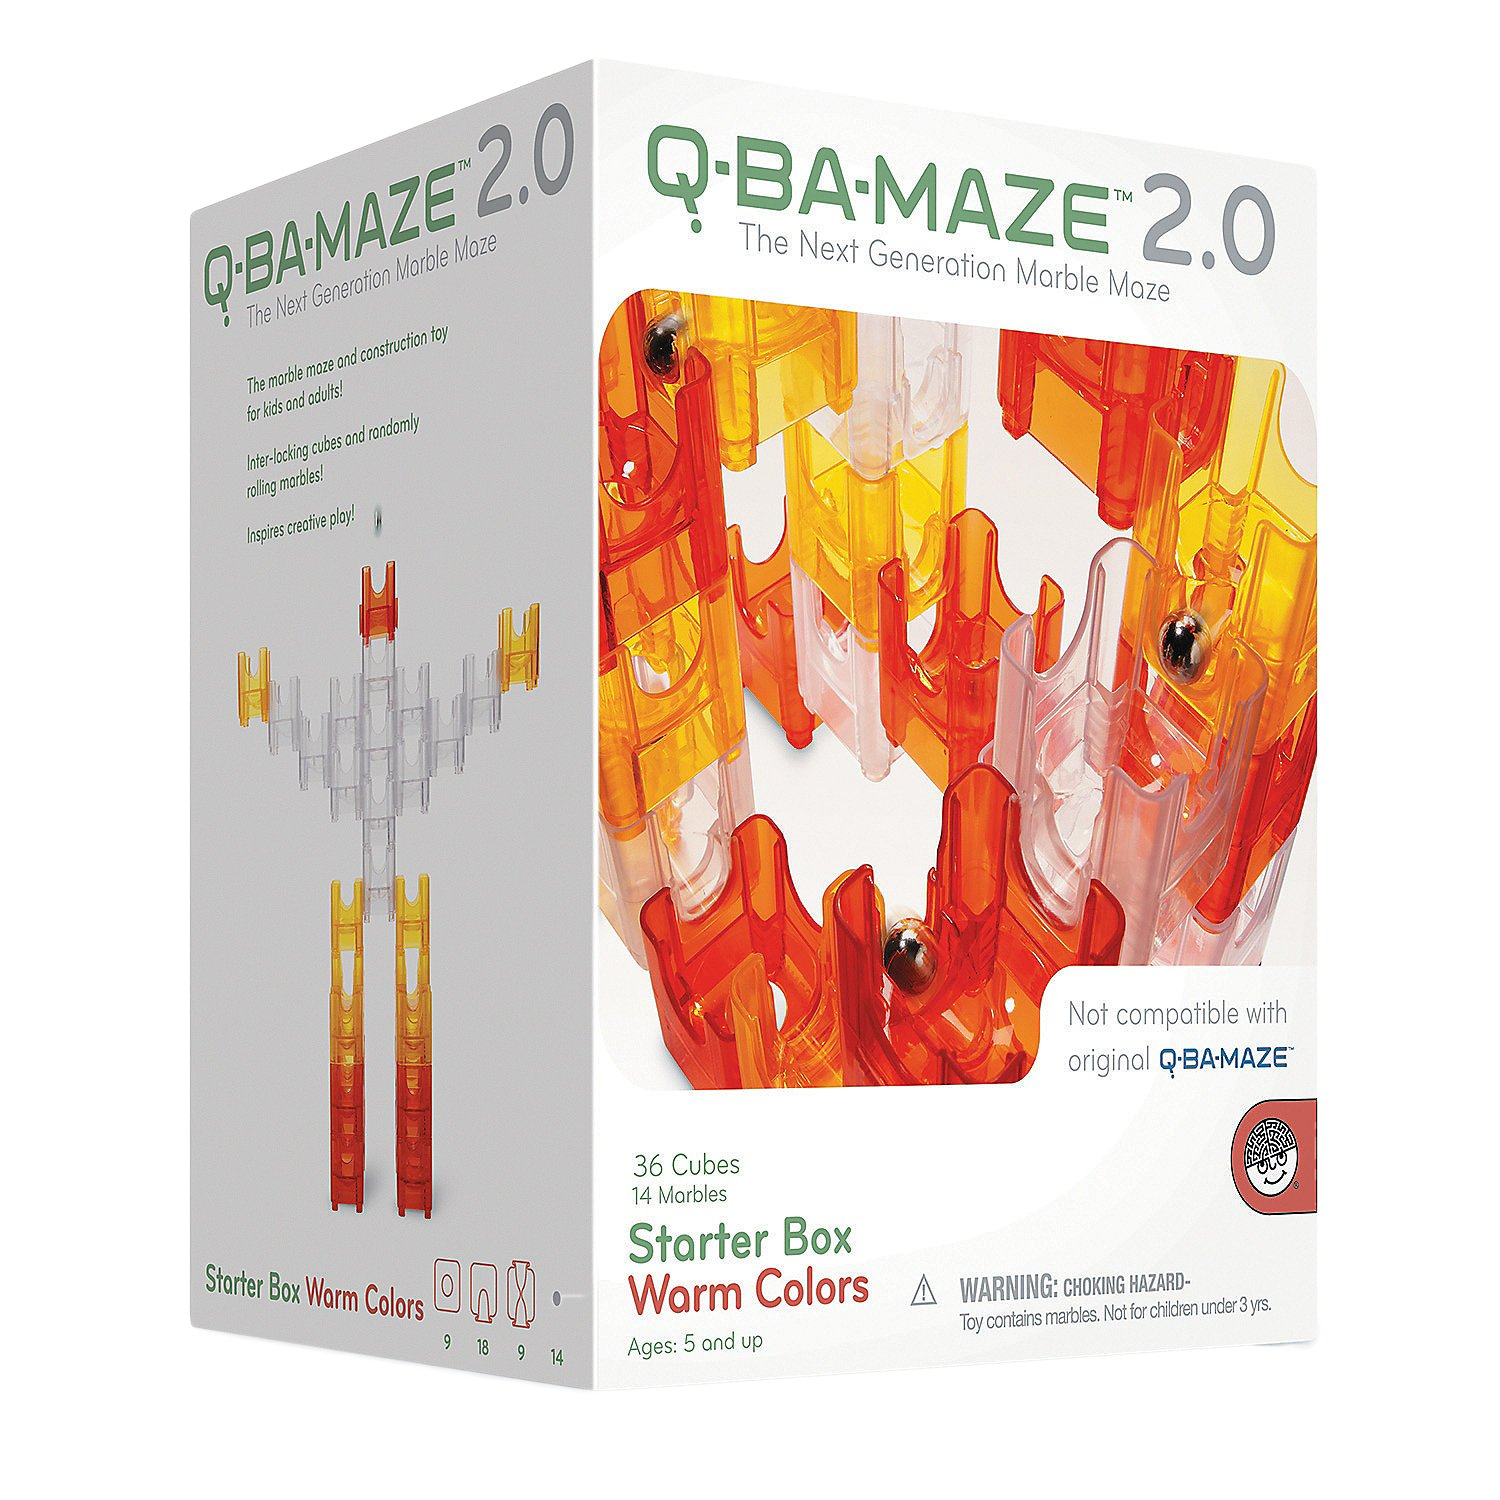 Q-Ba-Maze 2.0 Starter Box, Warm Colors: 50 Pcs